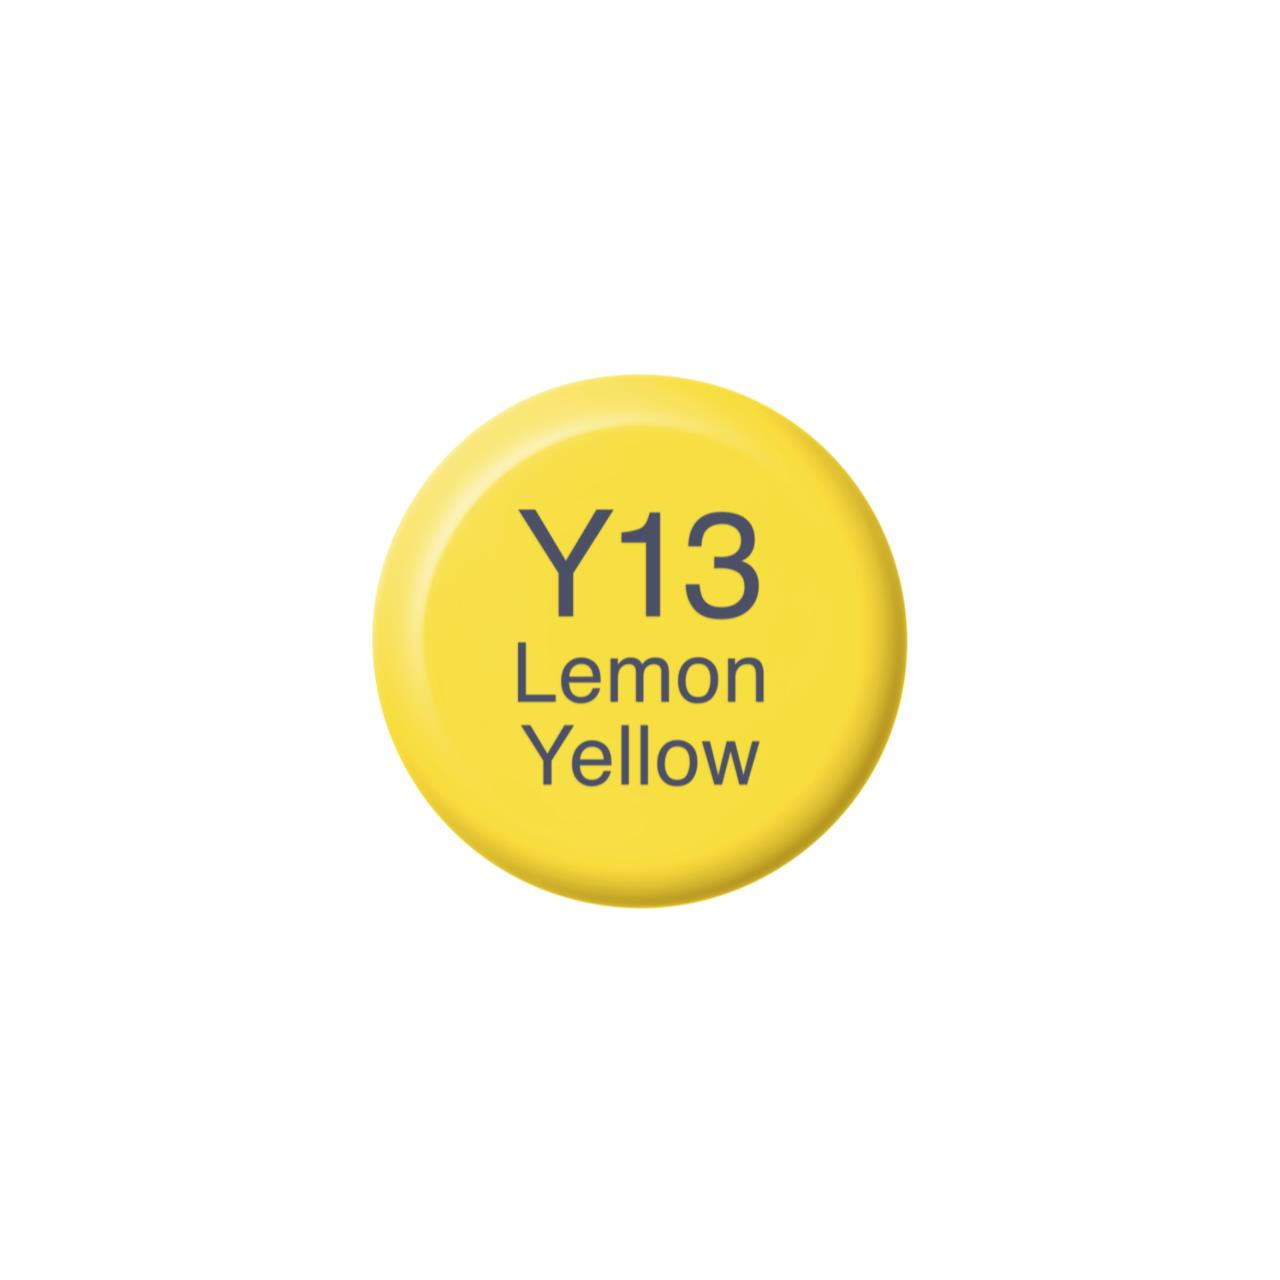 Y13 Lemon Yellow, Copic Ink - 4511338058213